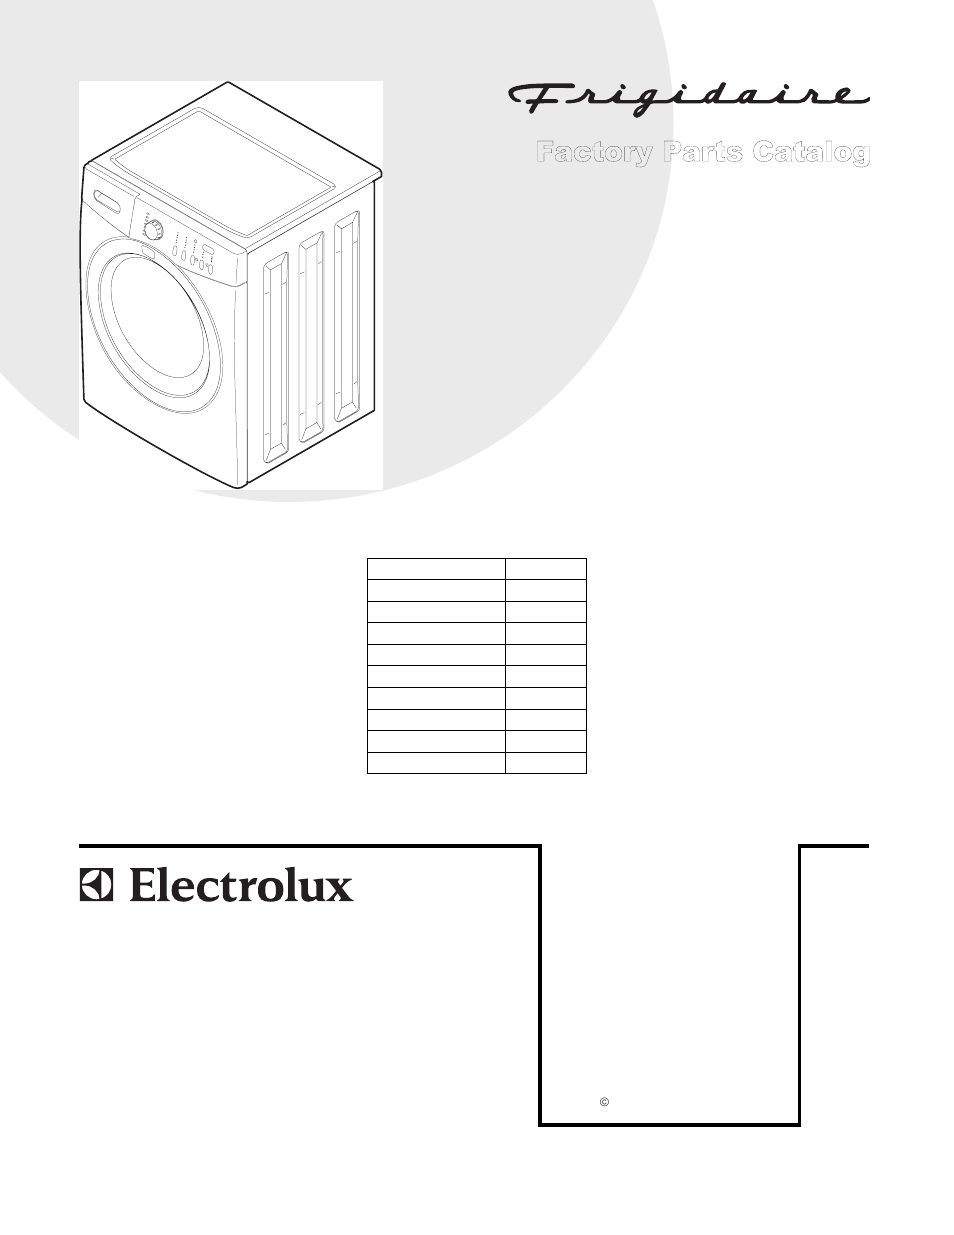 frigidaire ltf6000es0 page1 frigidaire ltf6000es0 user manual 8 pages  at reclaimingppi.co